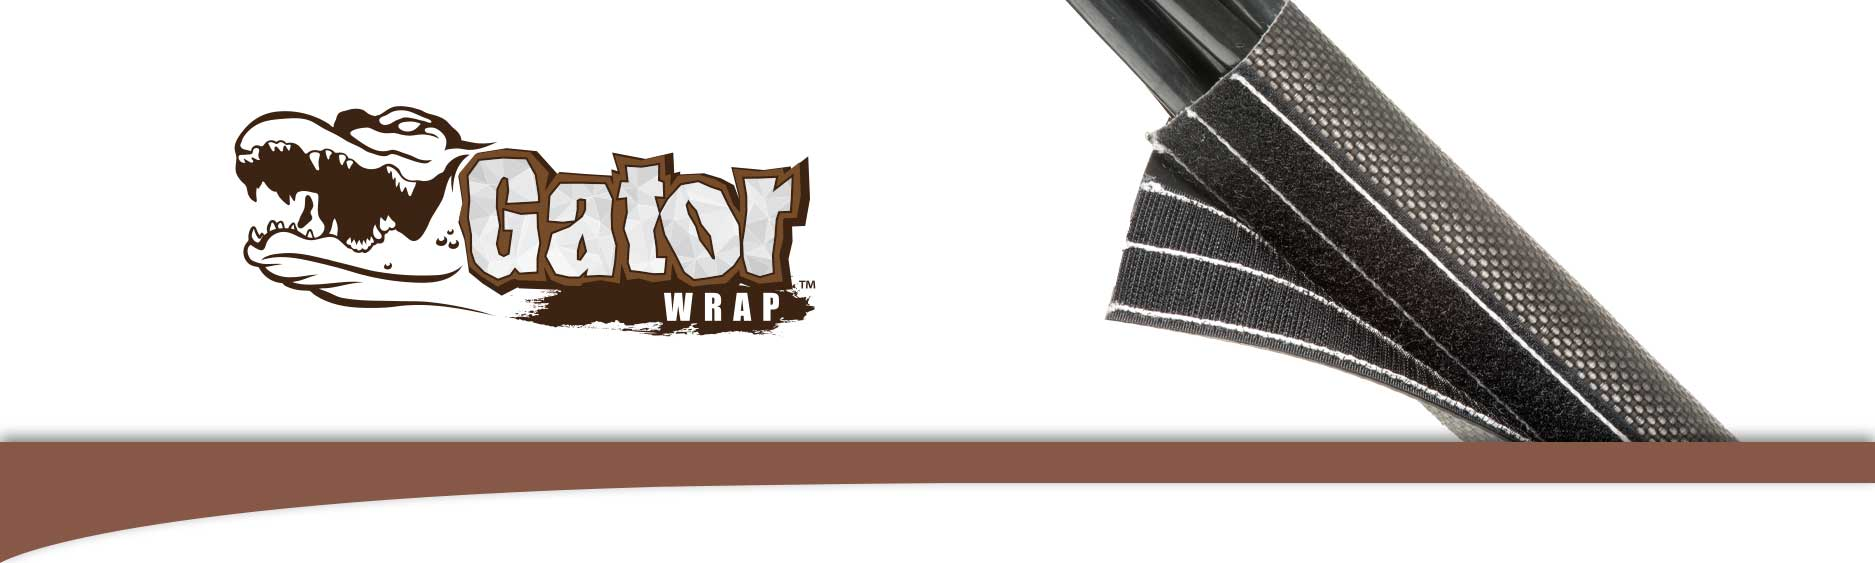 Gator Wrap Heavy Duty Wraparound Sleeving